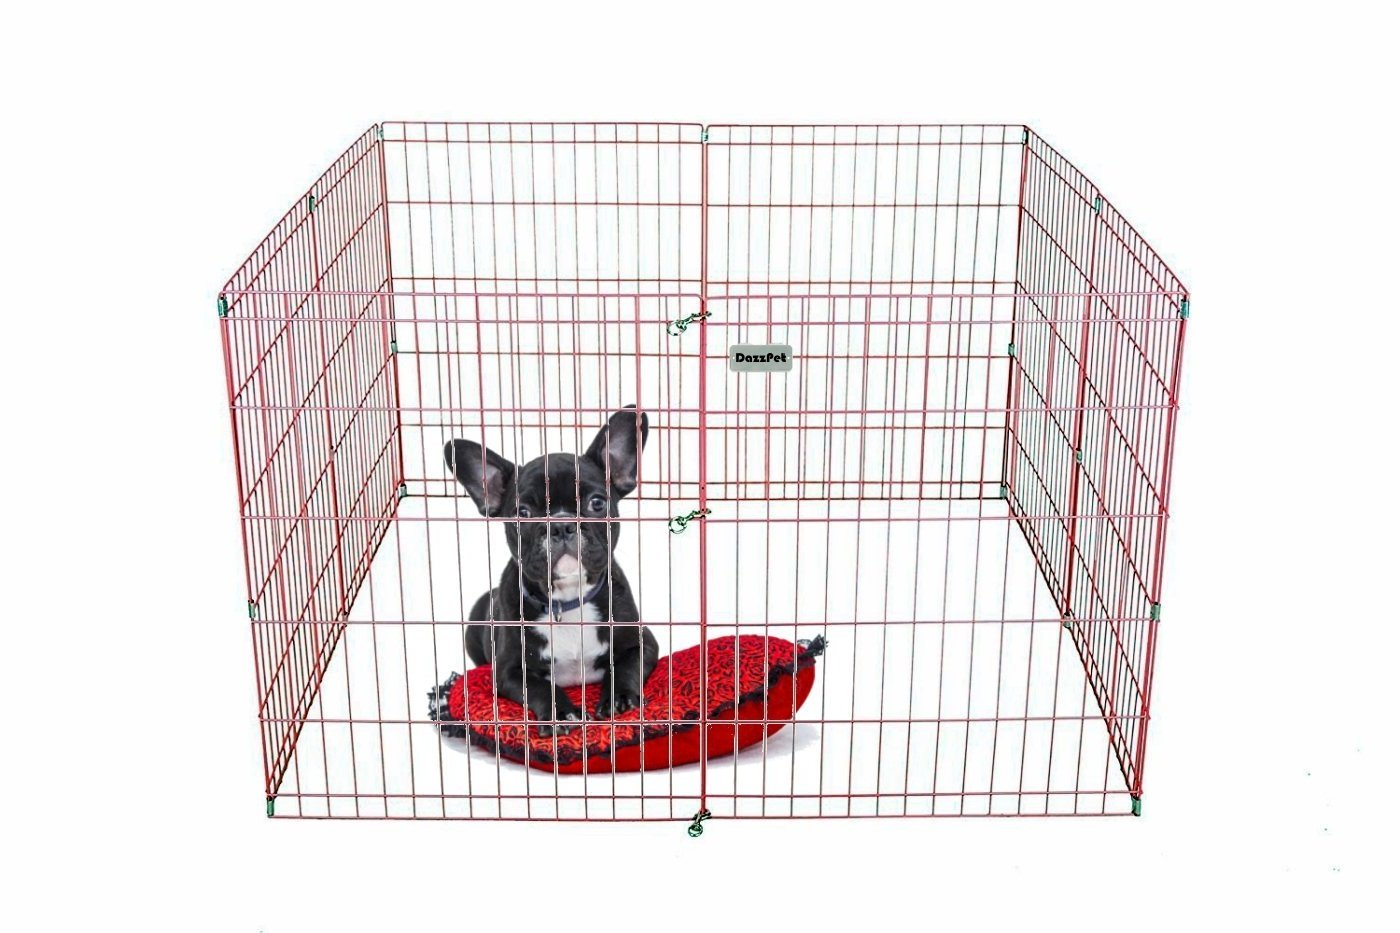 DazzPet Dog Pen Puppy Playpen | 30'' Height Indoor Outdoor Exercise Outside Play Yard | Pet Small Animal Puppies Portable Foldable Fence Enclosures | 8 Panel Metal Wire, Pink